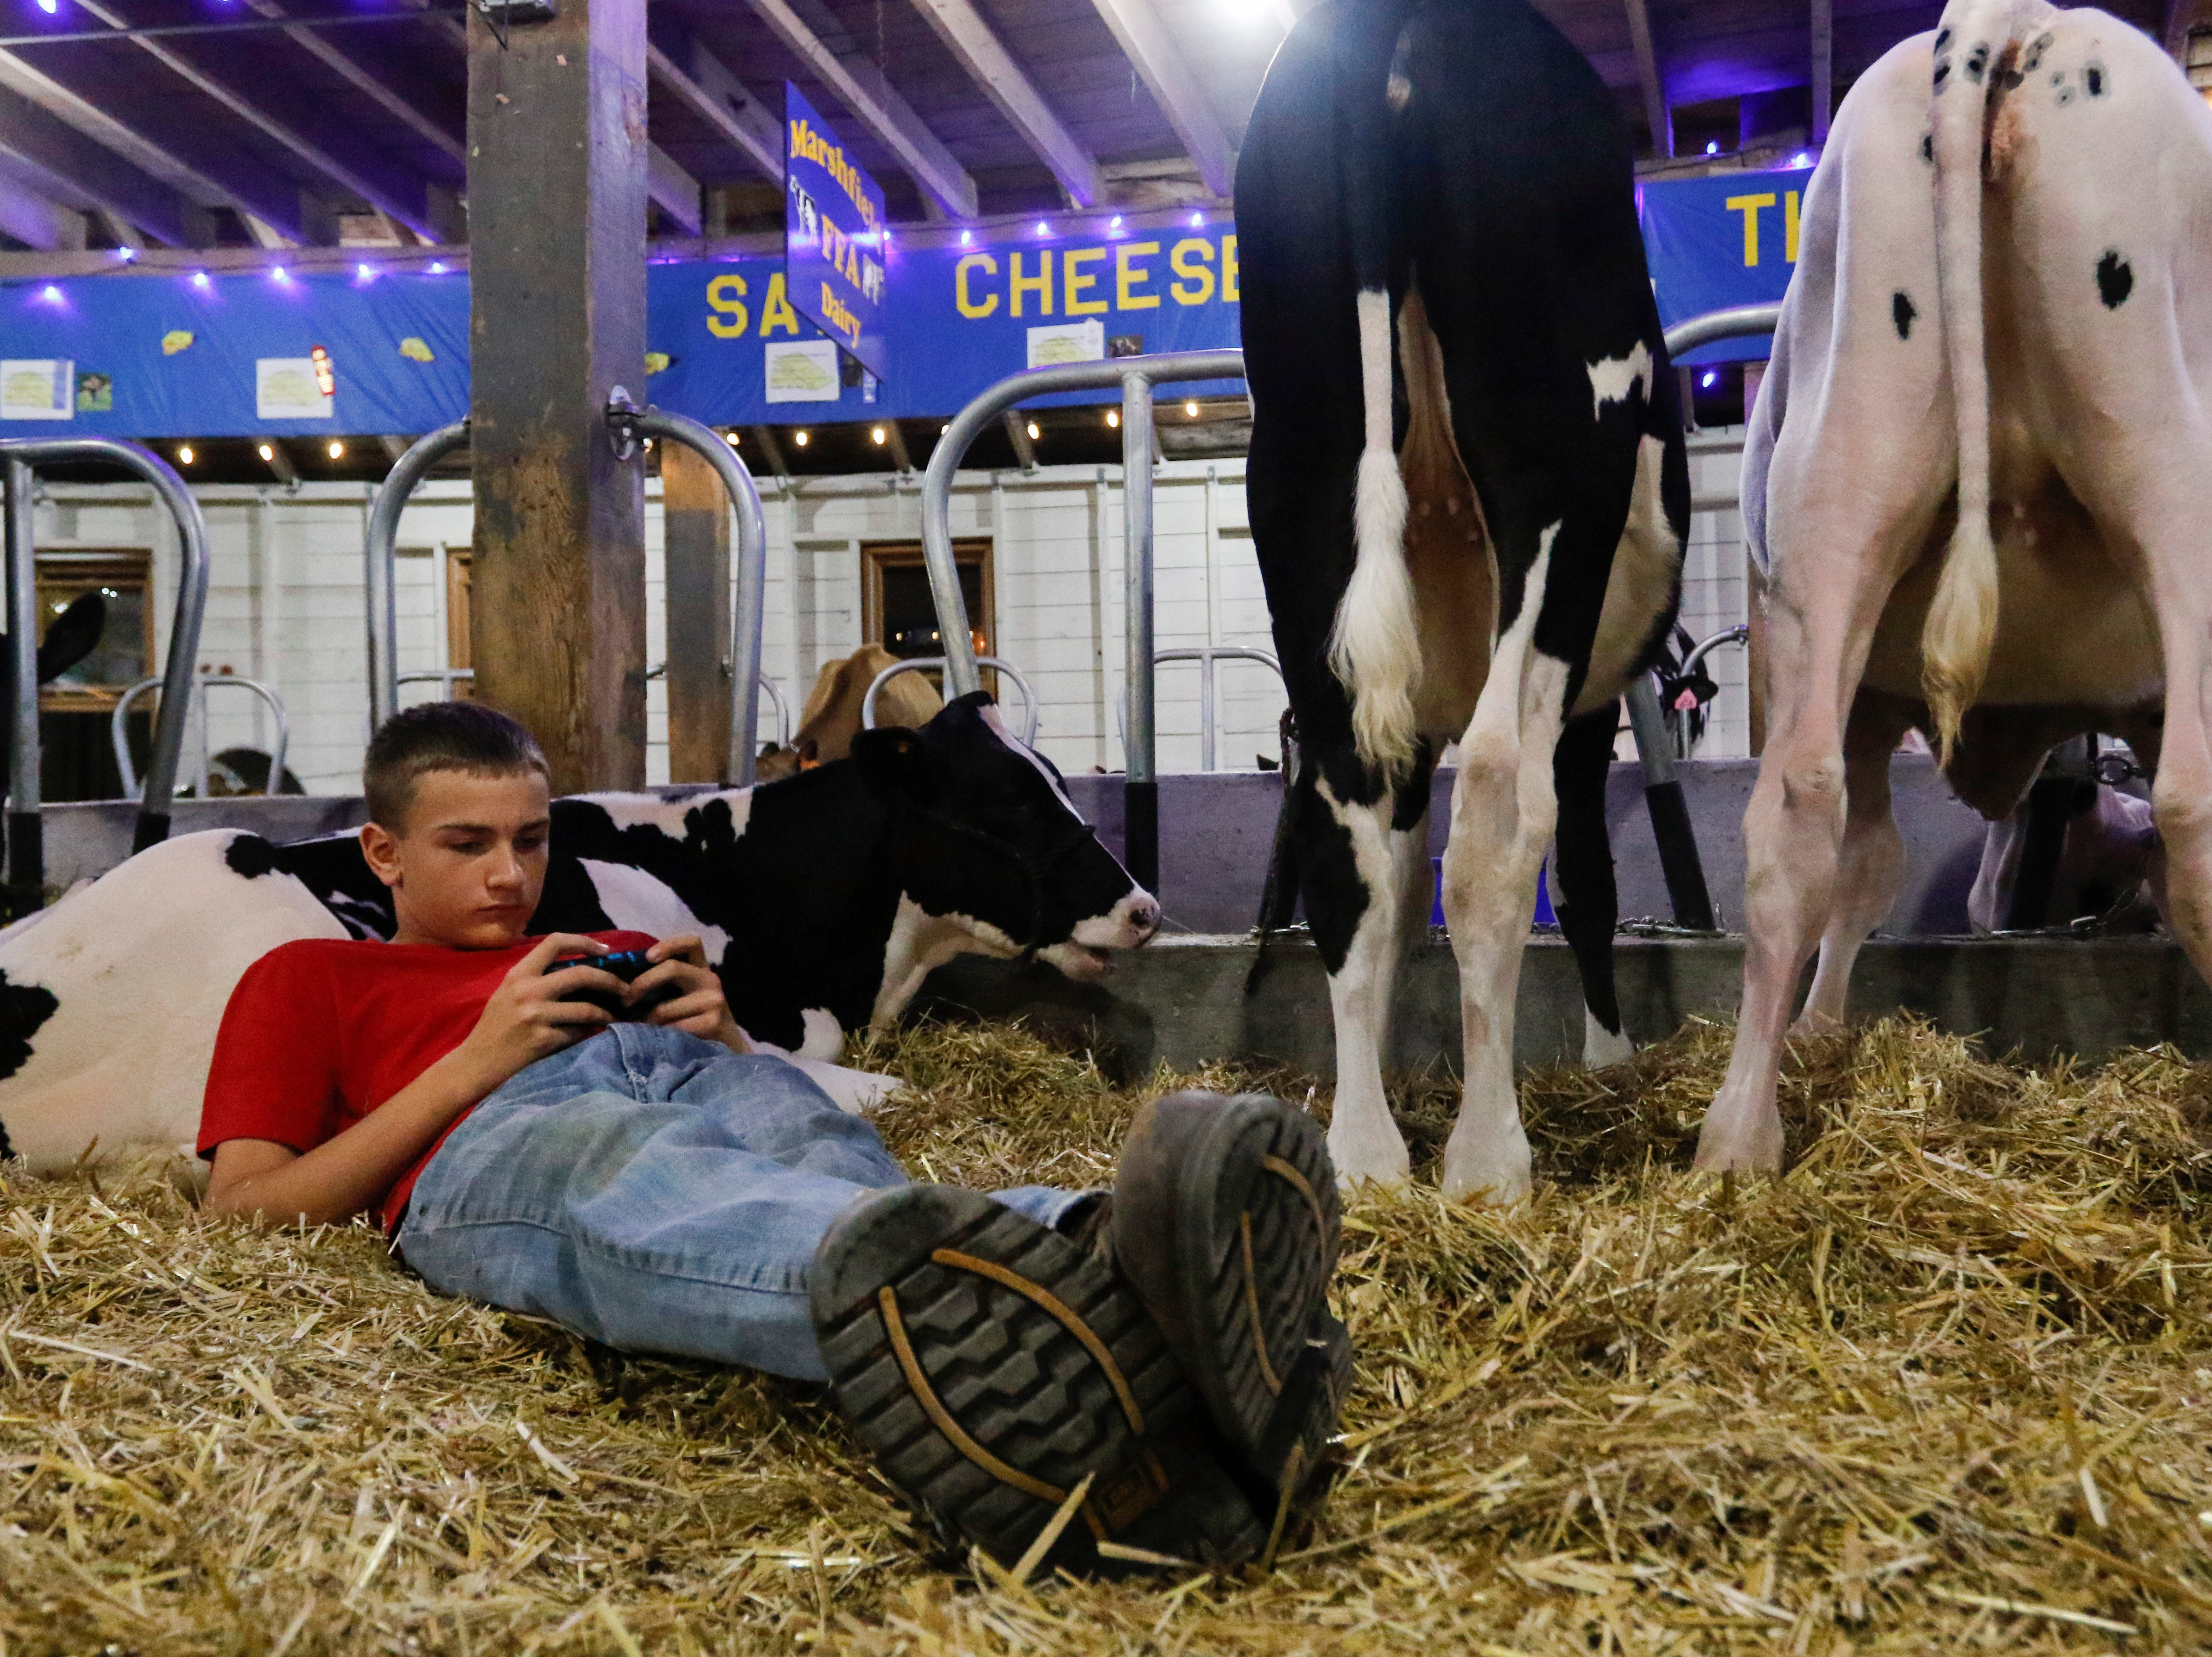 While laying against his cow Echo, Carter Grove, 14, a member of Marshfield FFA, plays a game on his phone in the world's largest round barn at the Central Wisconsin State Fair in Marshfield Wednesday, August 22, 2018.